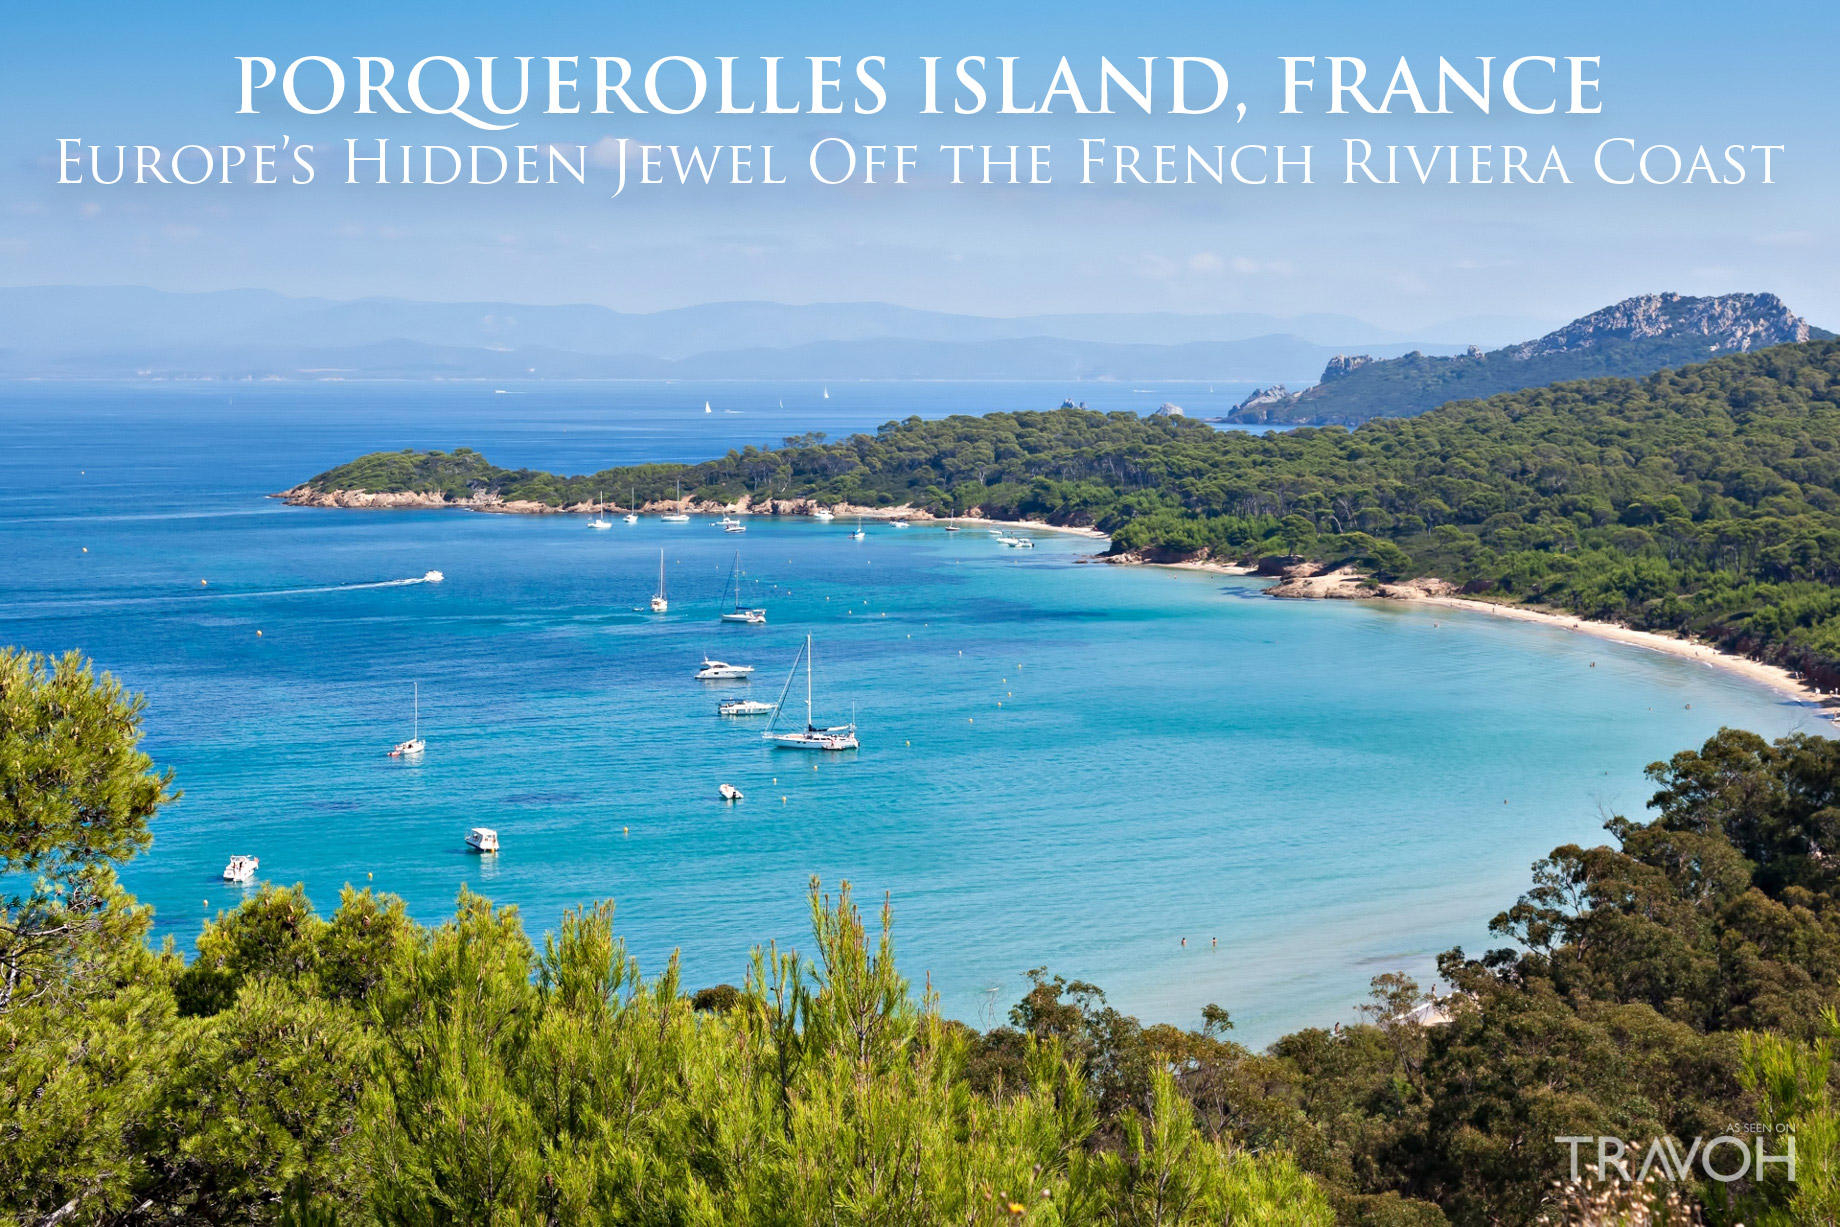 Porquerolles Island, France - Europe's Hidden Jewel Off The French Riviera Coast